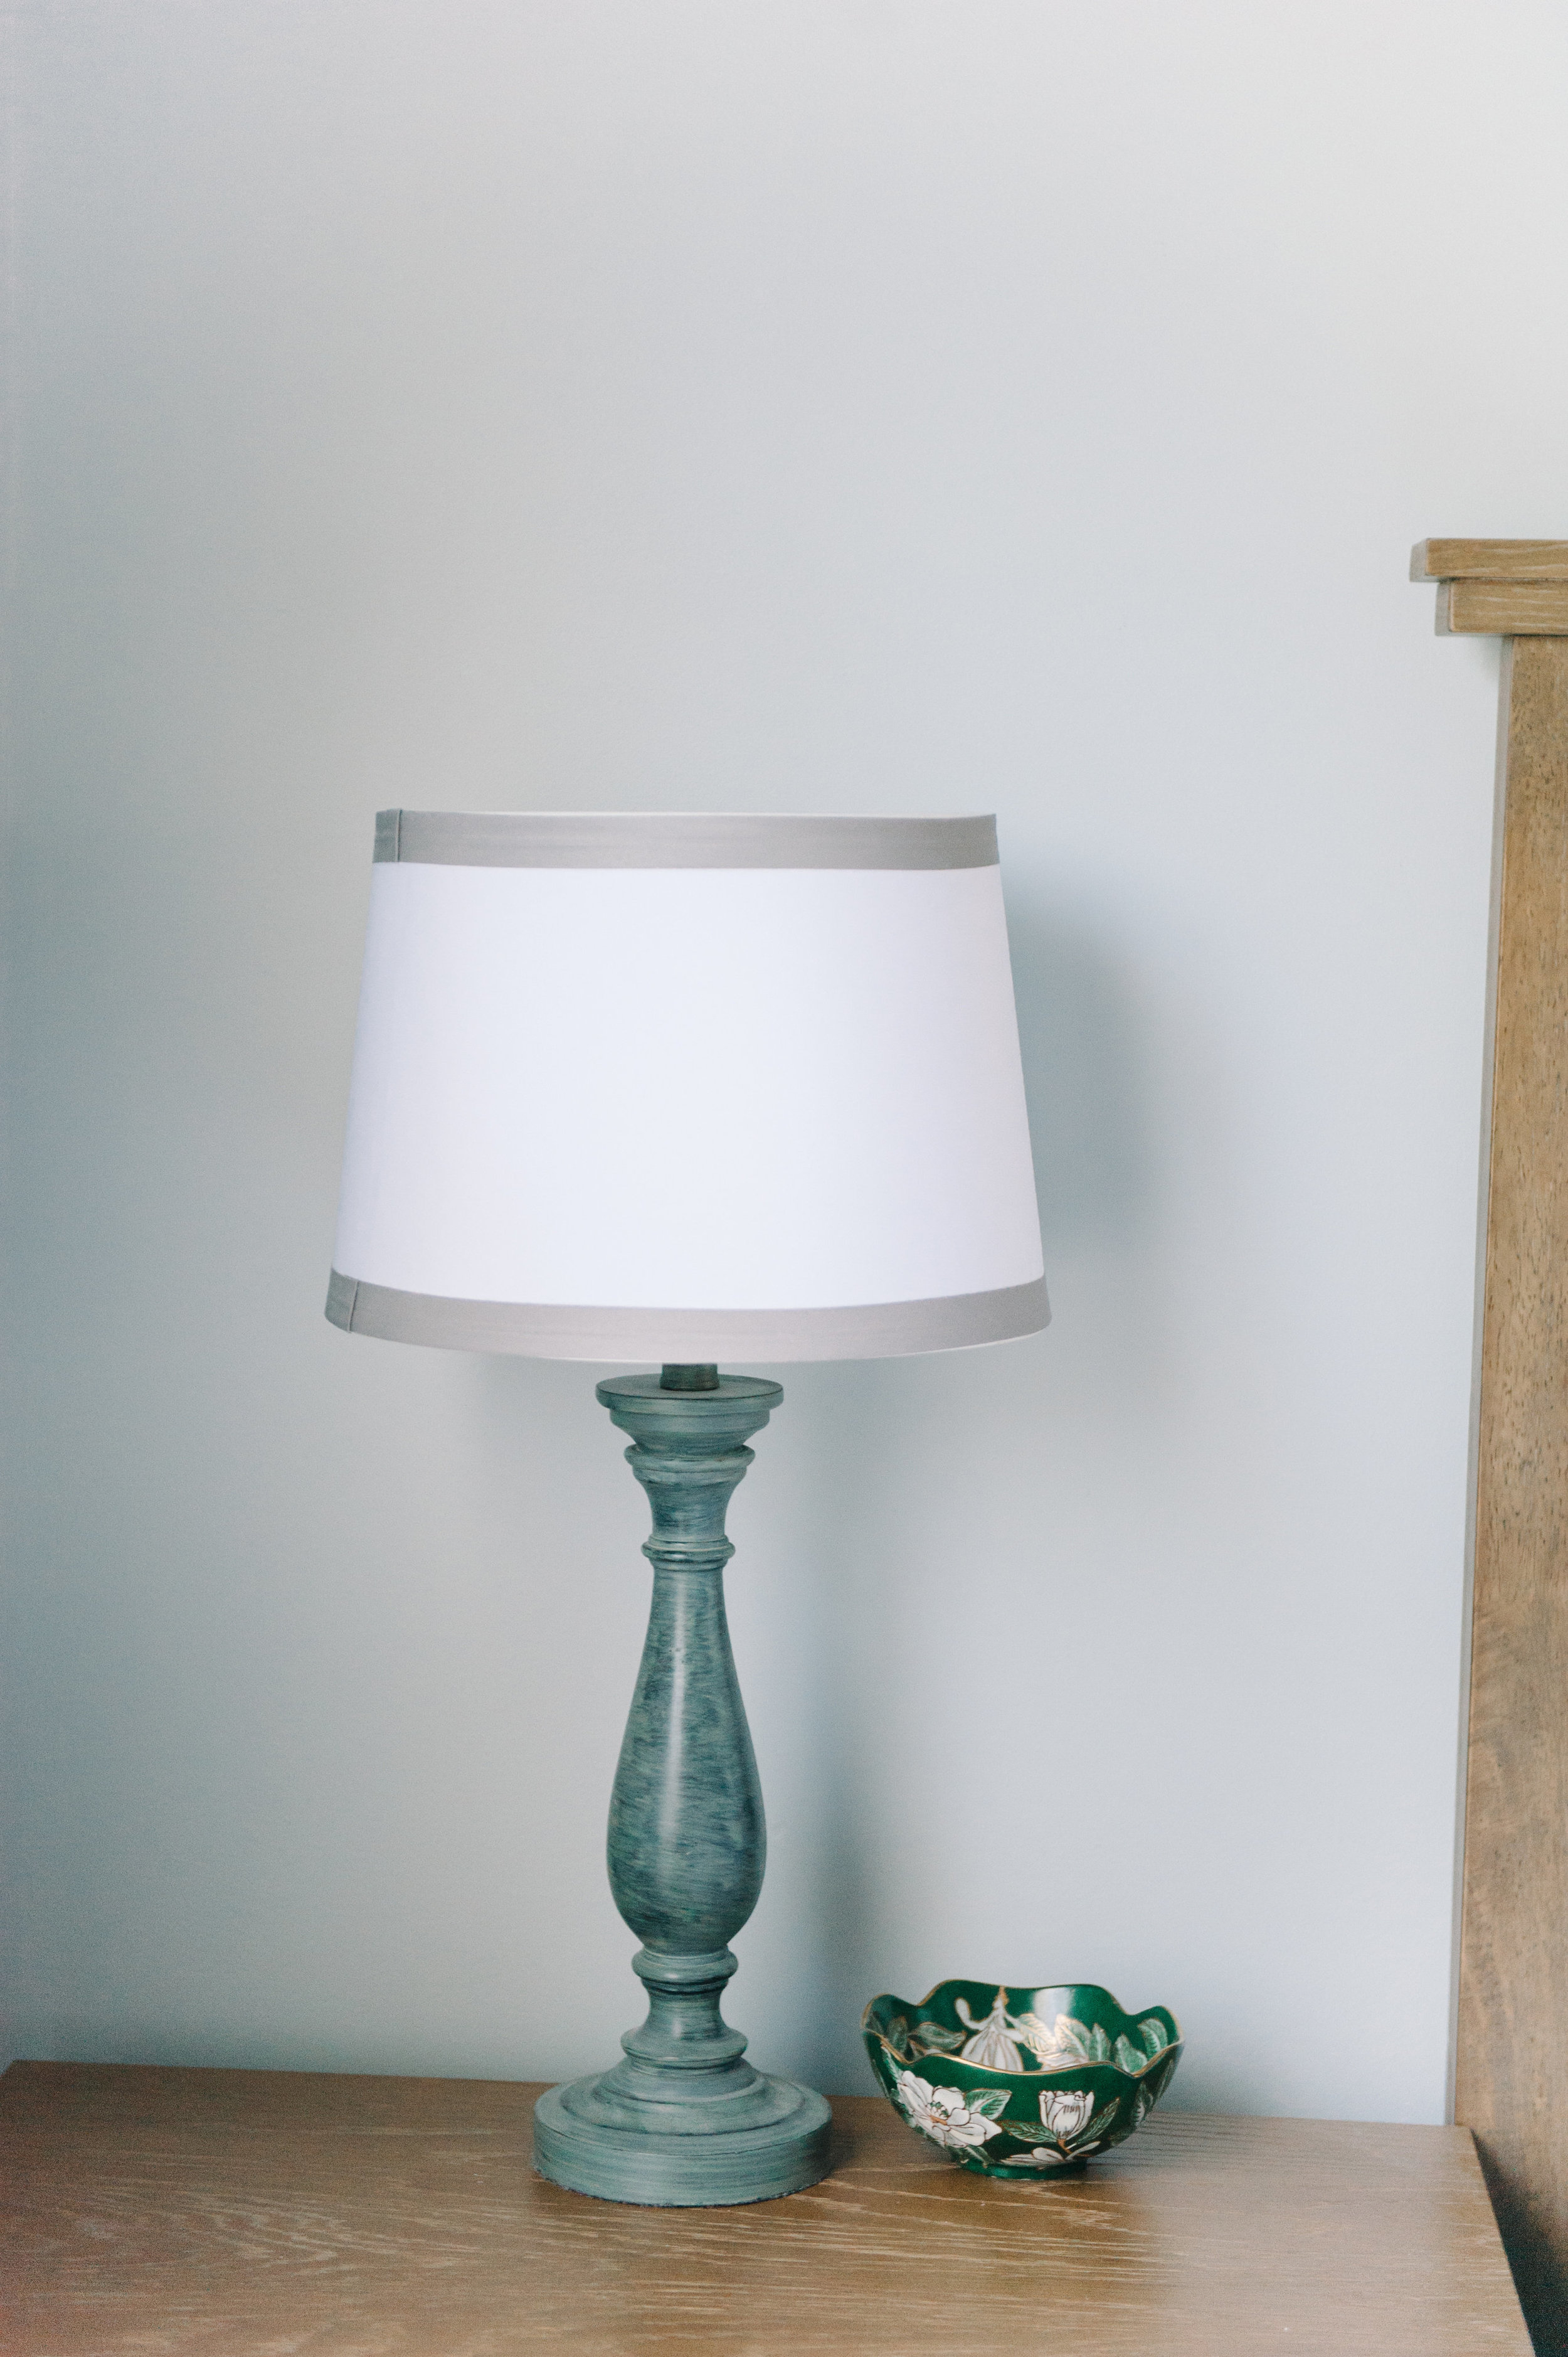 anniemade | Master Bedroom - Lamp and Details | photo by Faith Teasley Photography